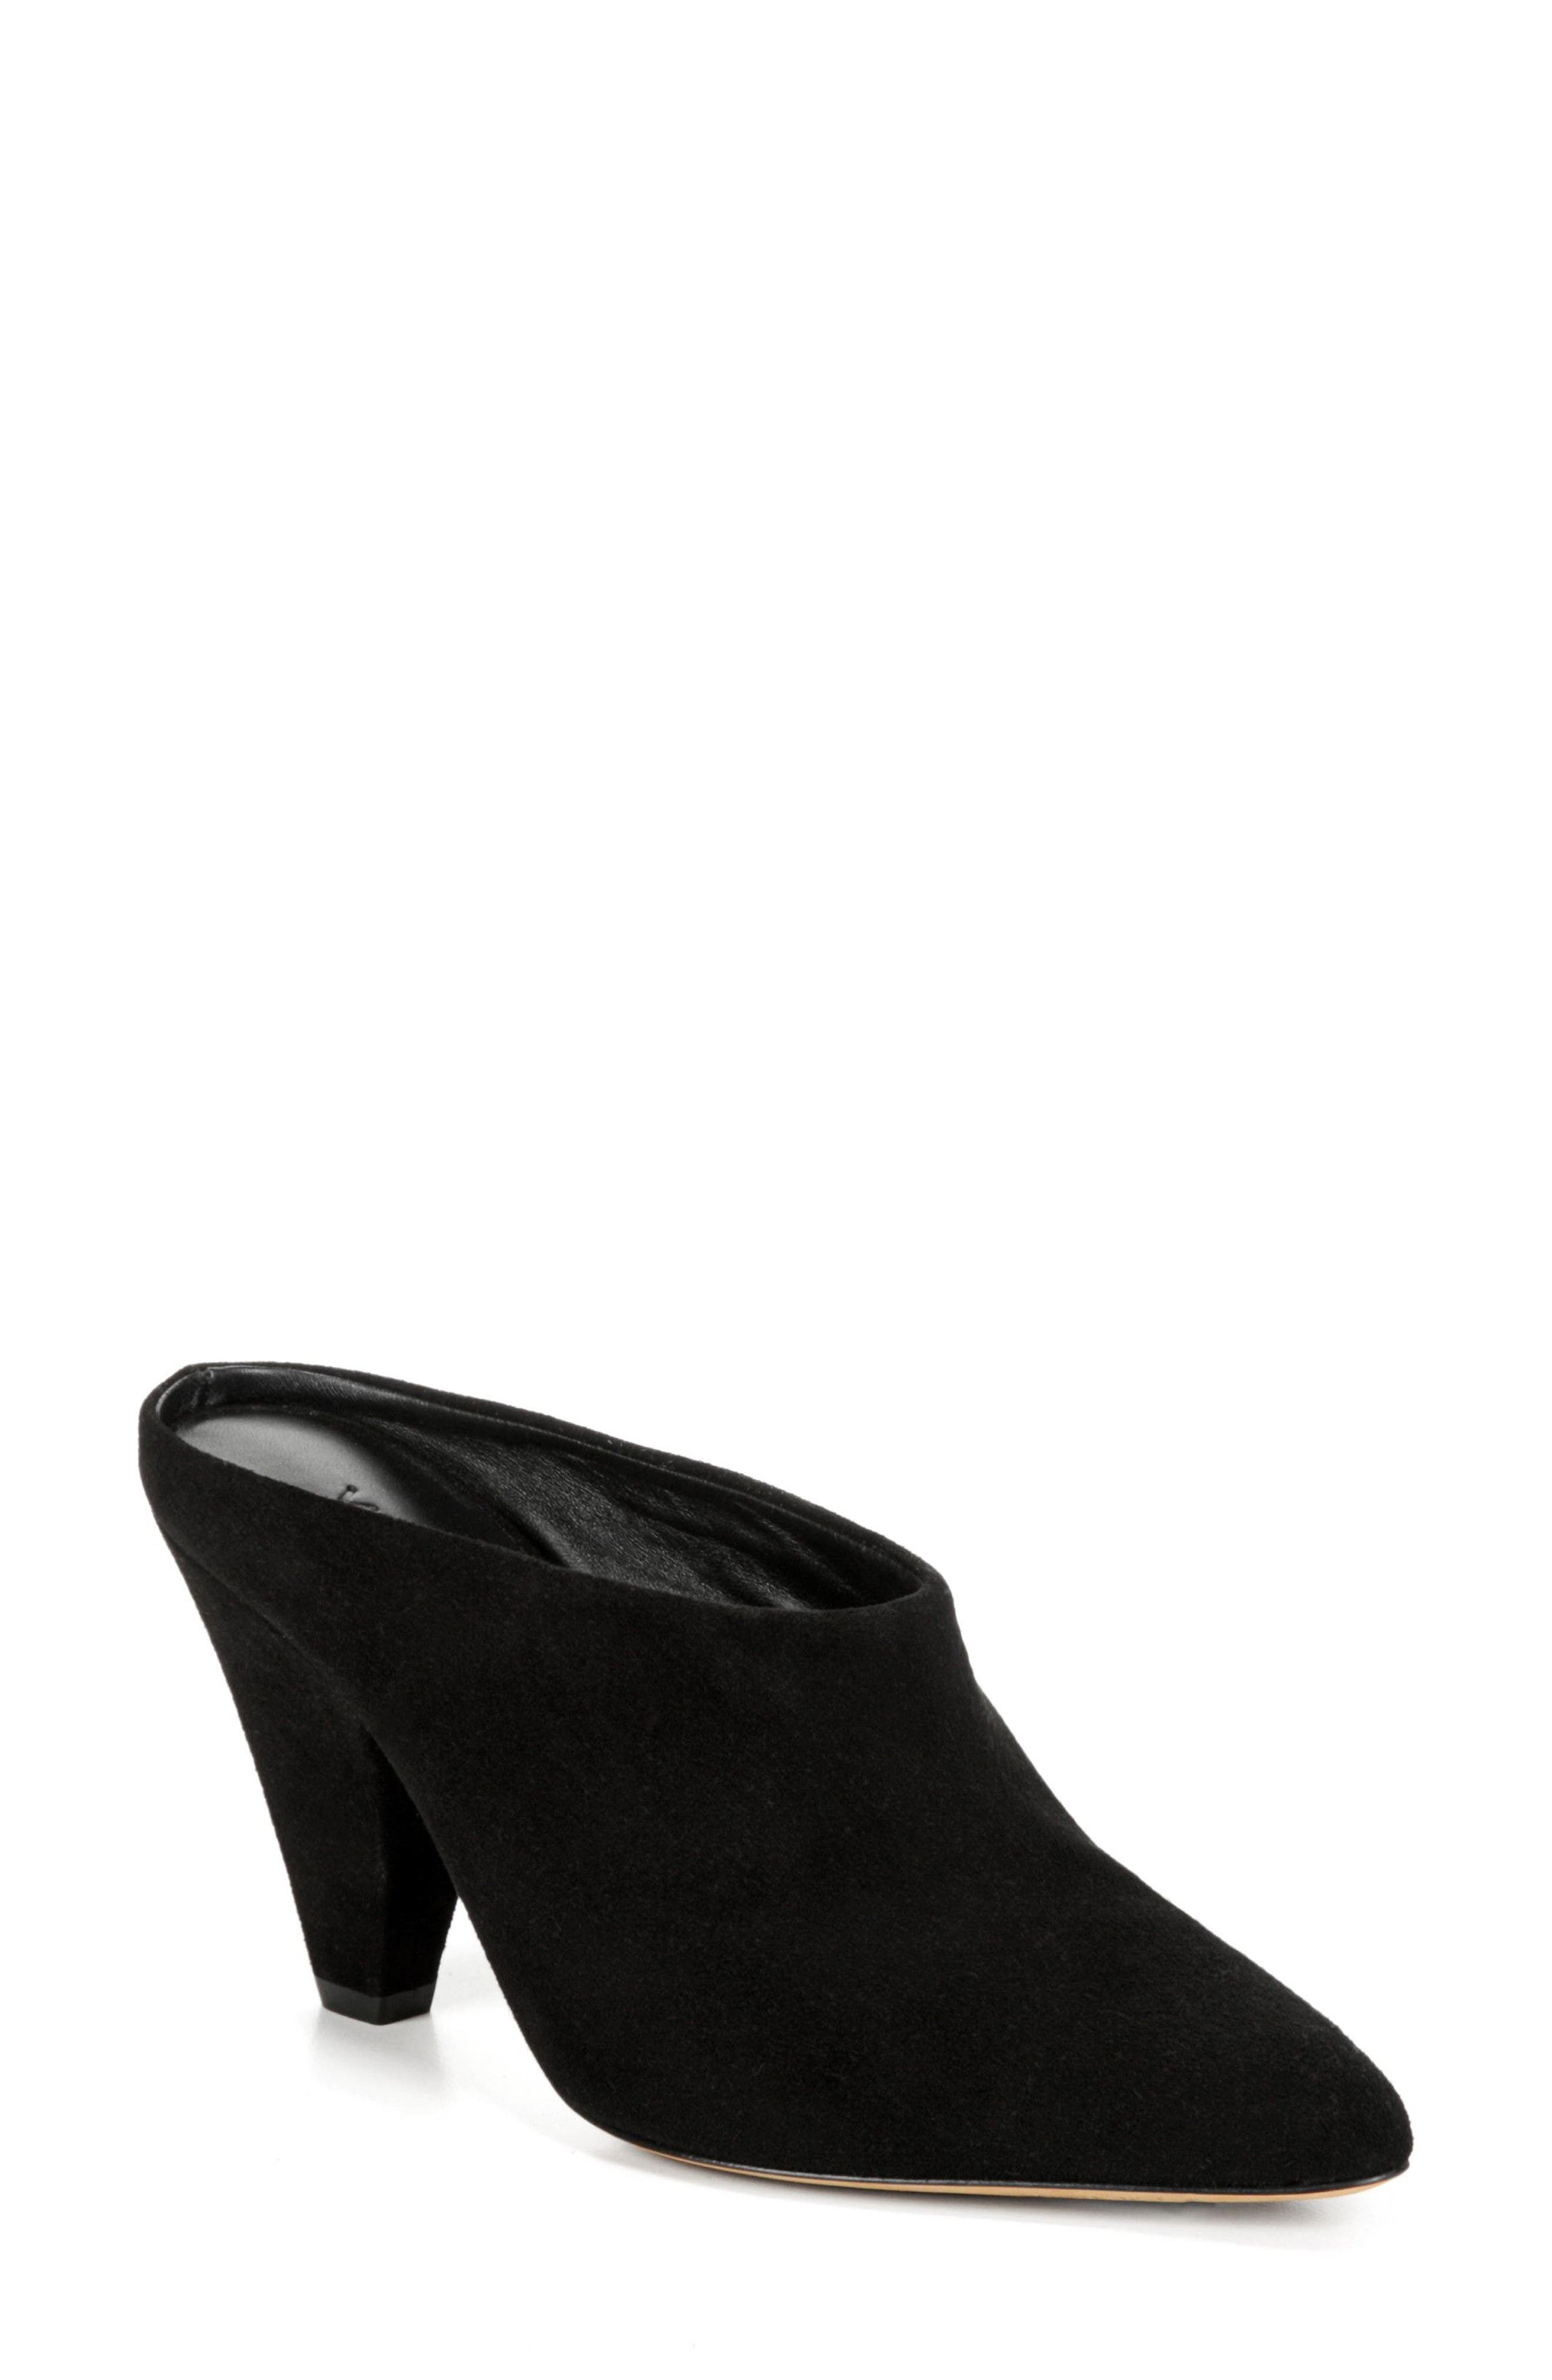 Emberly Mule,                         Main,                         color, Black